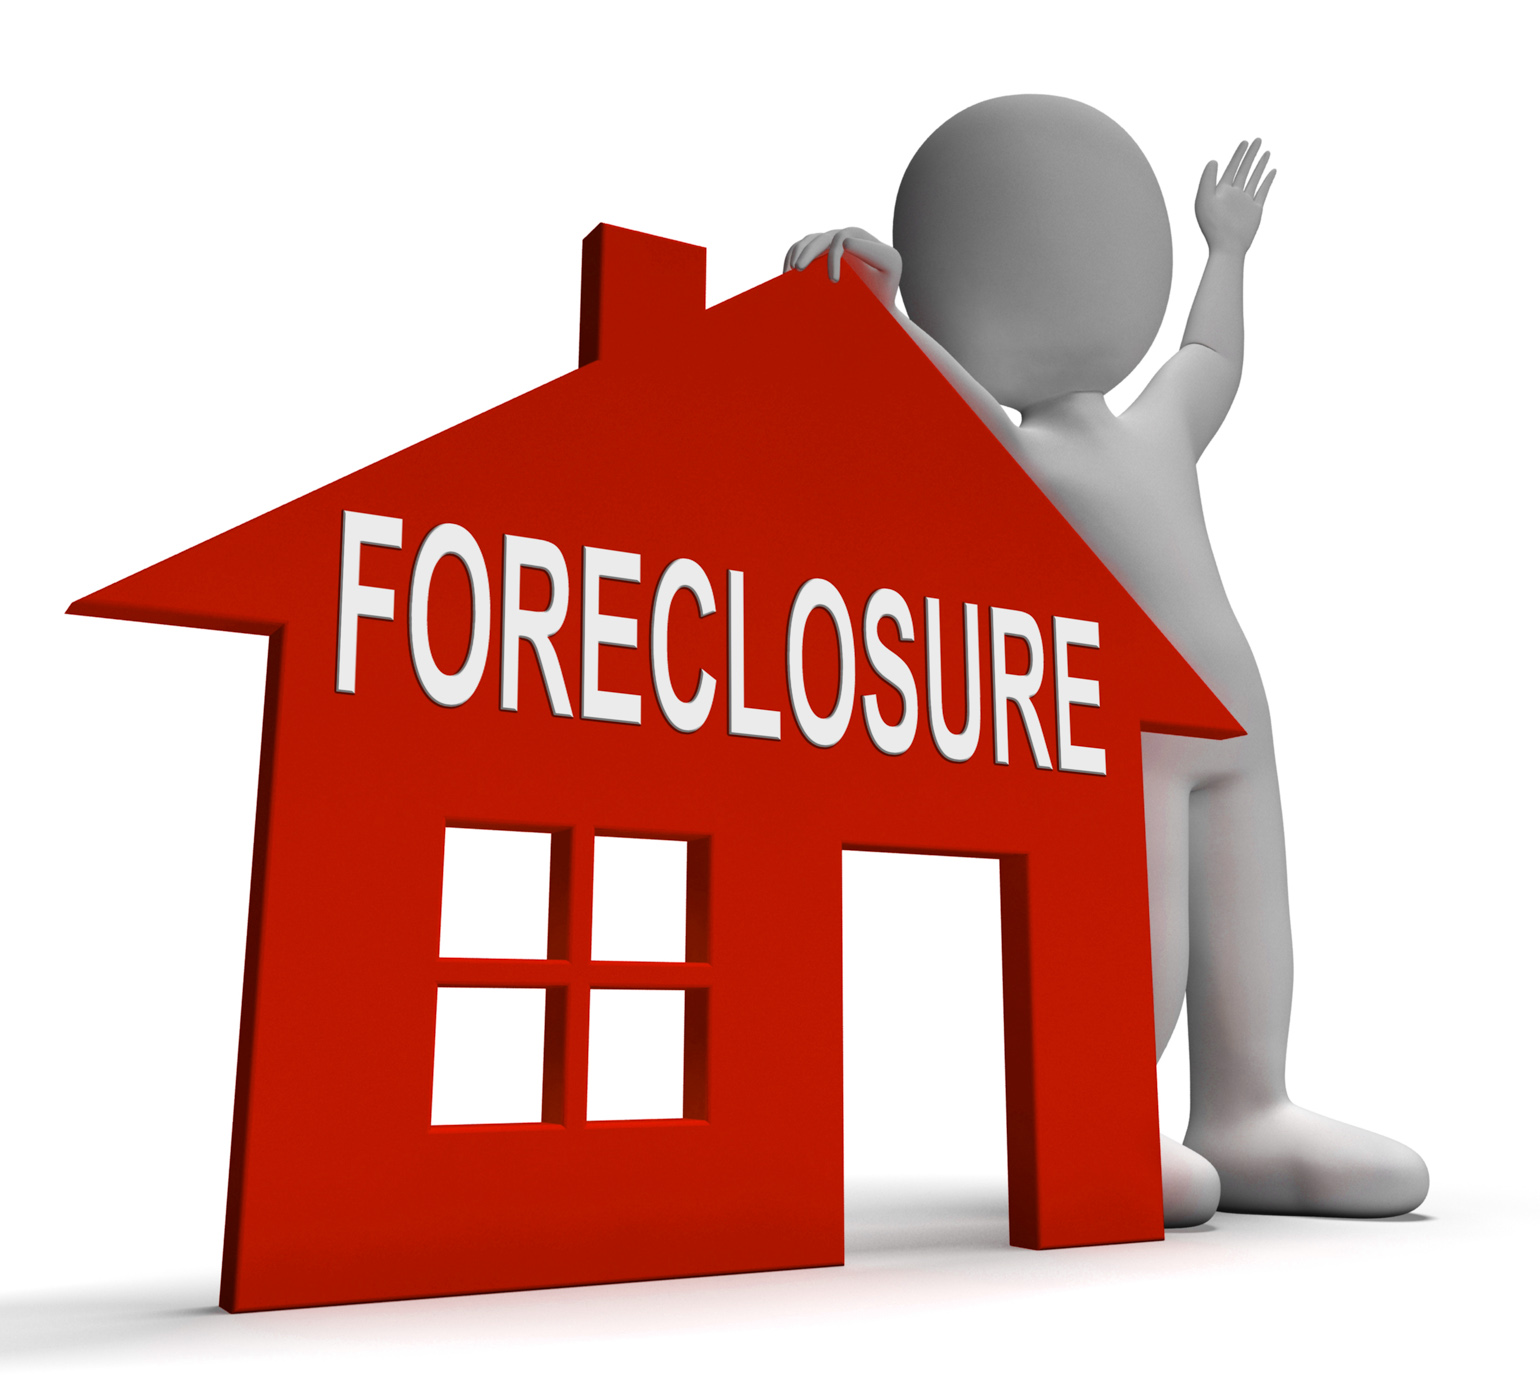 Foreclosure House Shows Repossession And Sale By Lender, House, Repossession, Repossess, Repaymentsstoppe, HQ Photo